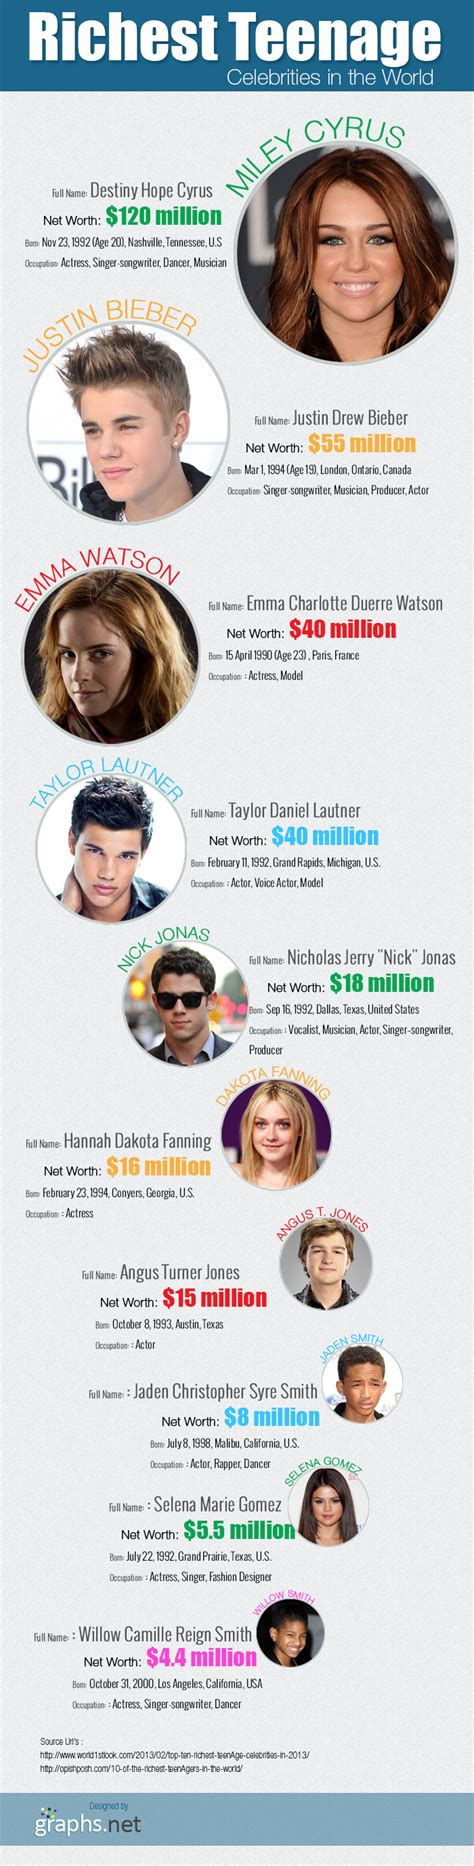 richest celebrity list in the world richest teenage celebrities in the world infographic